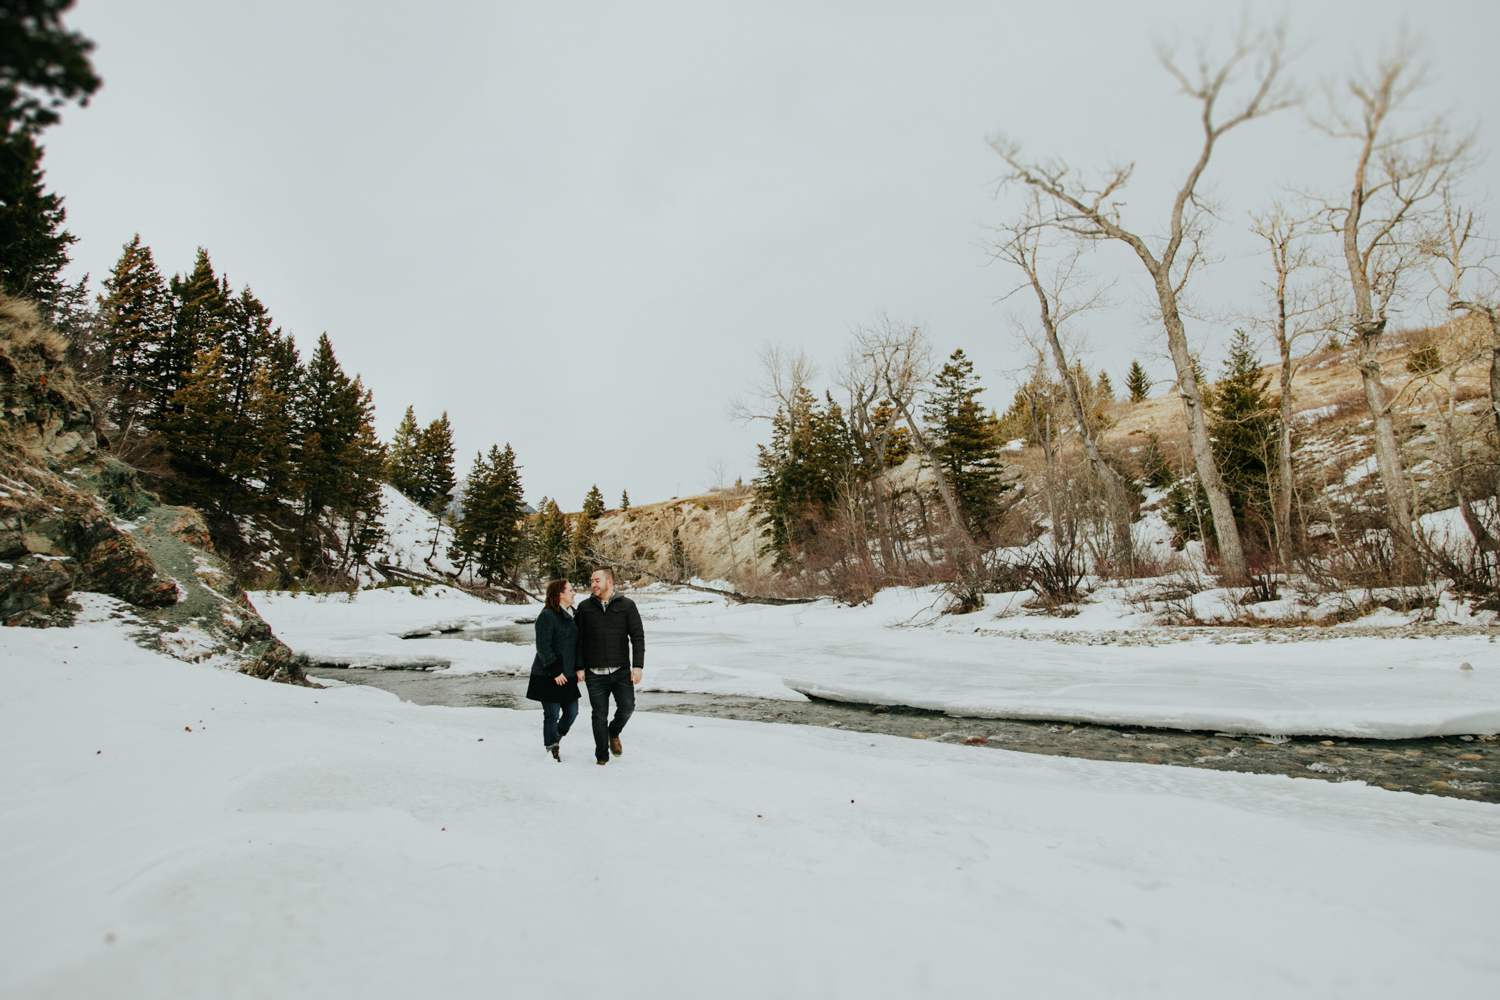 waterton-photographer-love-and-be-loved-photography-trent-danielle-engagement-winter-picture-image-photo-34.jpg